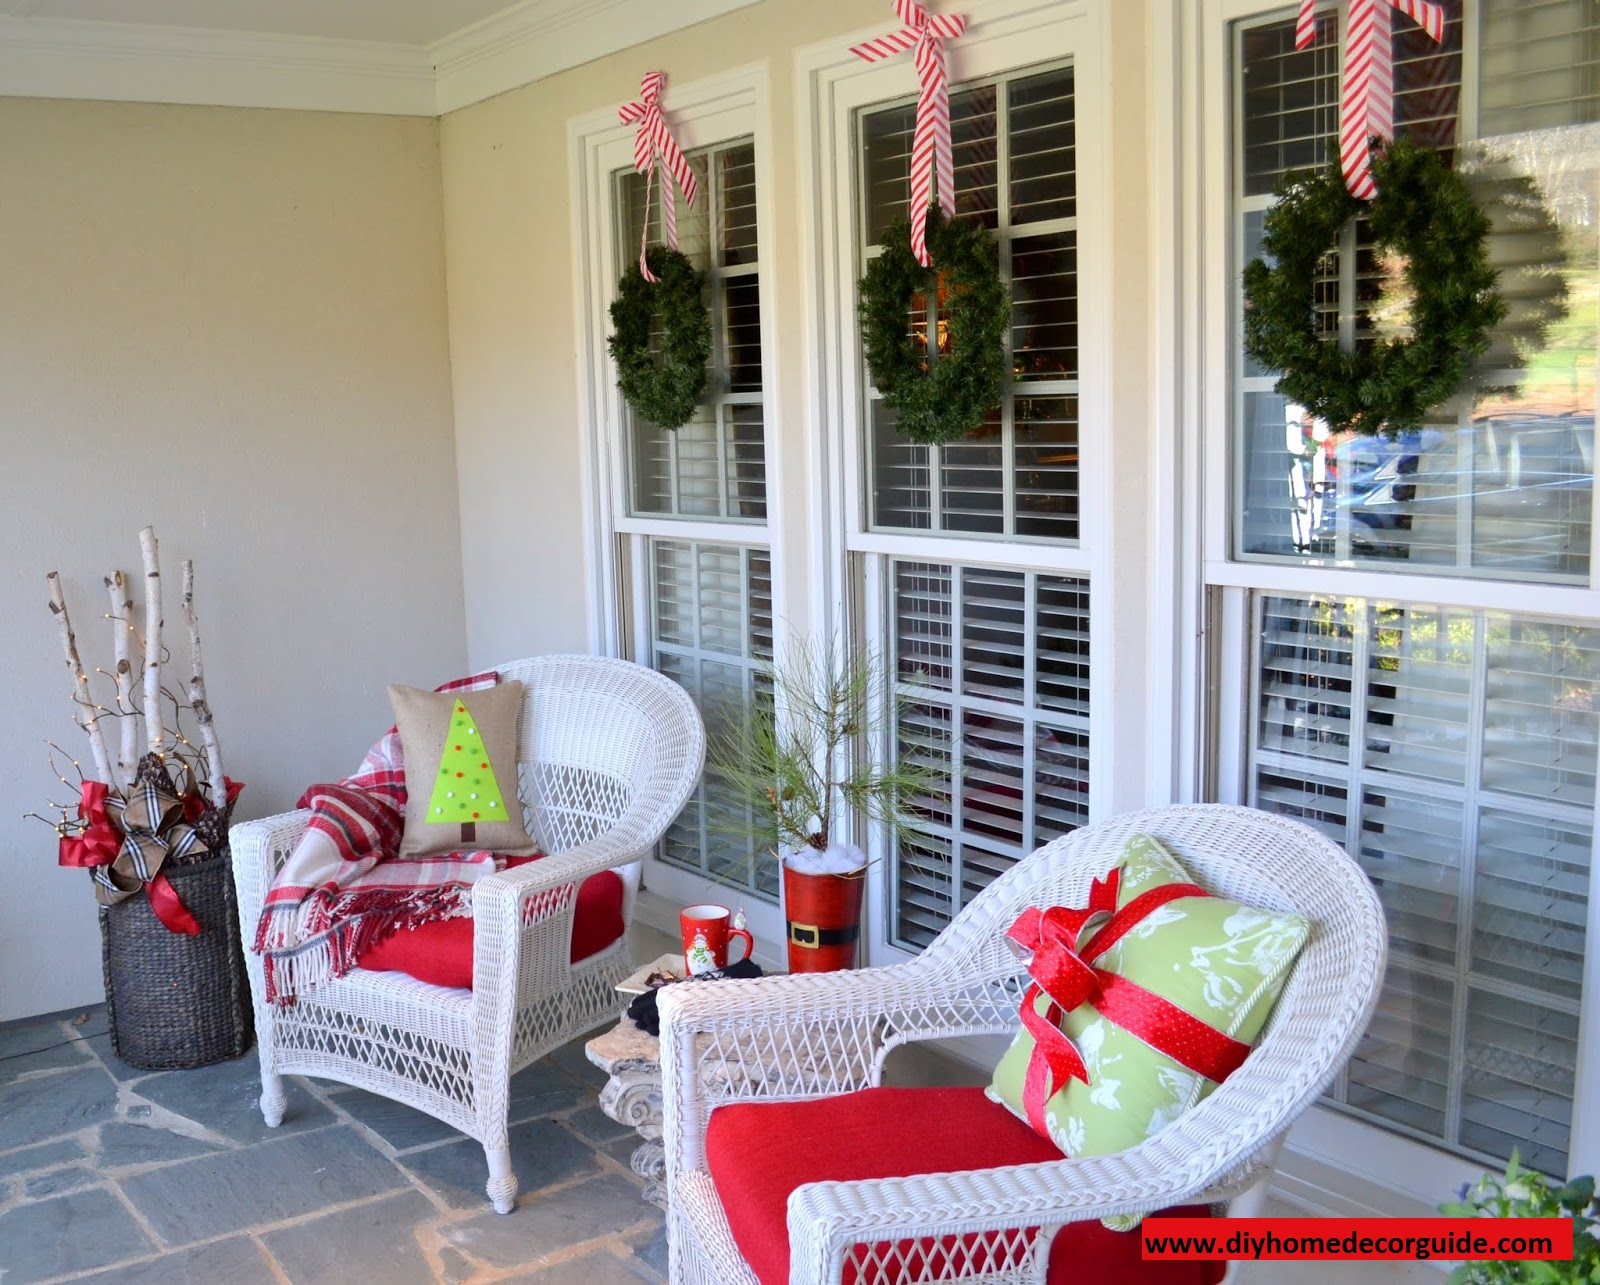 Outdoor christmas decorations 2014 - Outdoor Christmas Decor Ideas